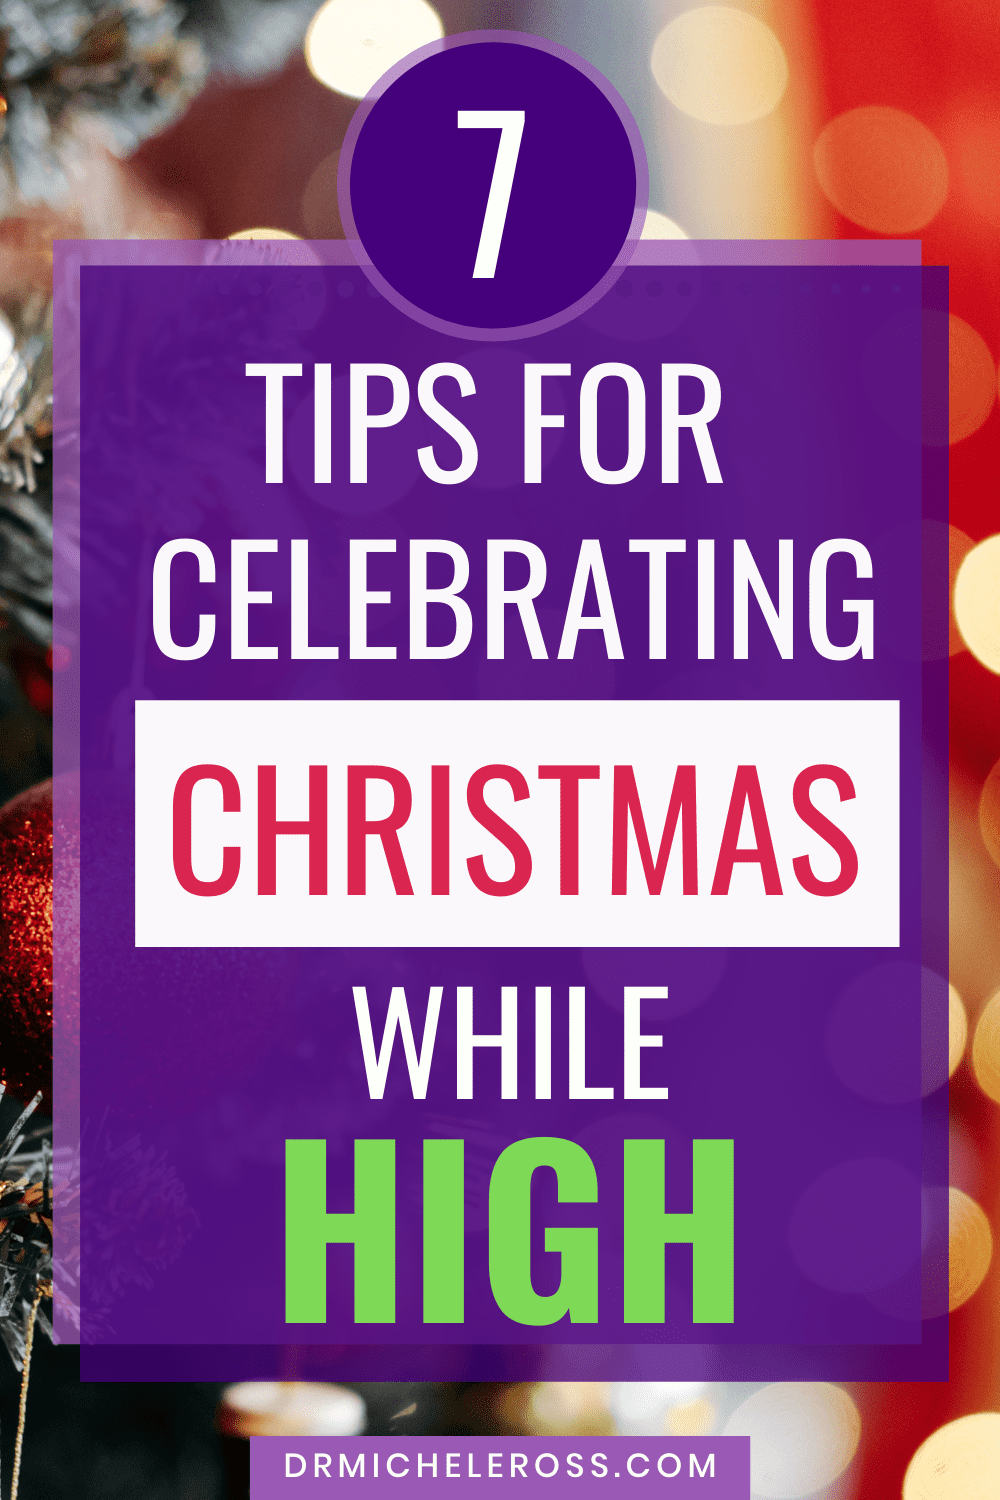 7 Tips For Celebrating Christmas While High